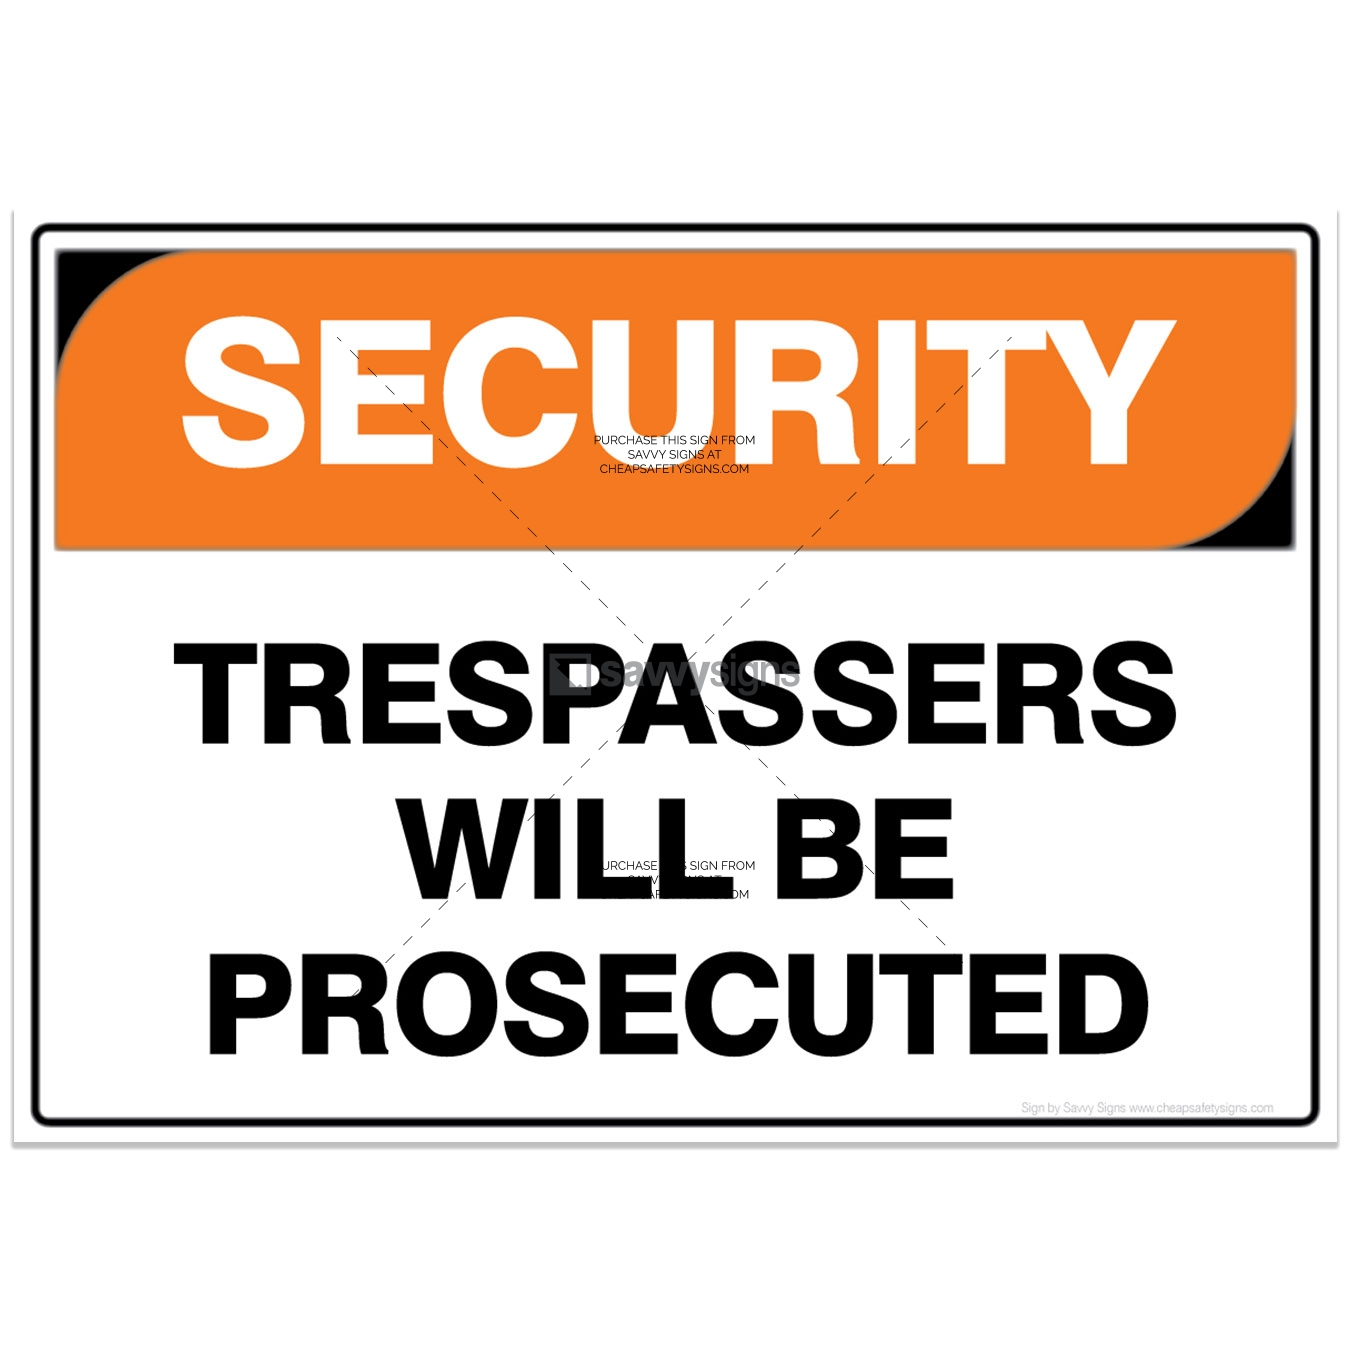 SSSEC3033-SECURITY-Workplace-Safety-Signs_Savvy-Signs_v3